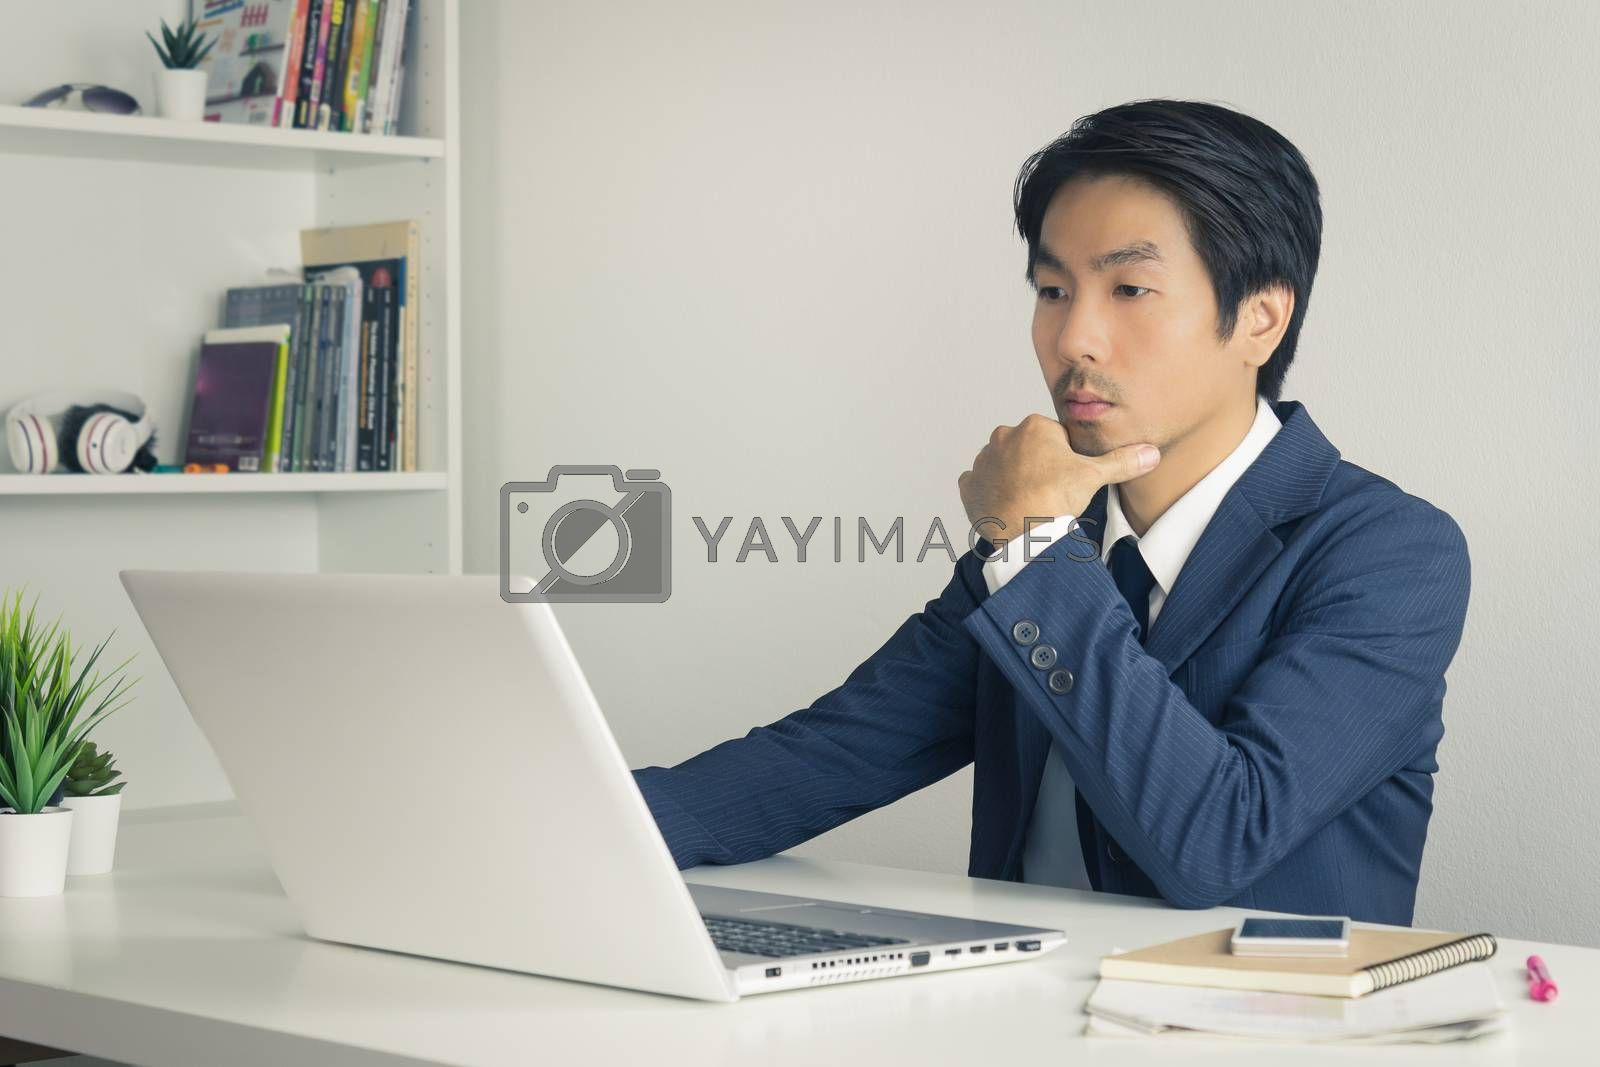 Asian Financial Advisor or Asian Consulting Businessman in Suit Thinking in front of Laptop Monitor in Office. Asian financial advisor or Asian consulting businessman contact with customer